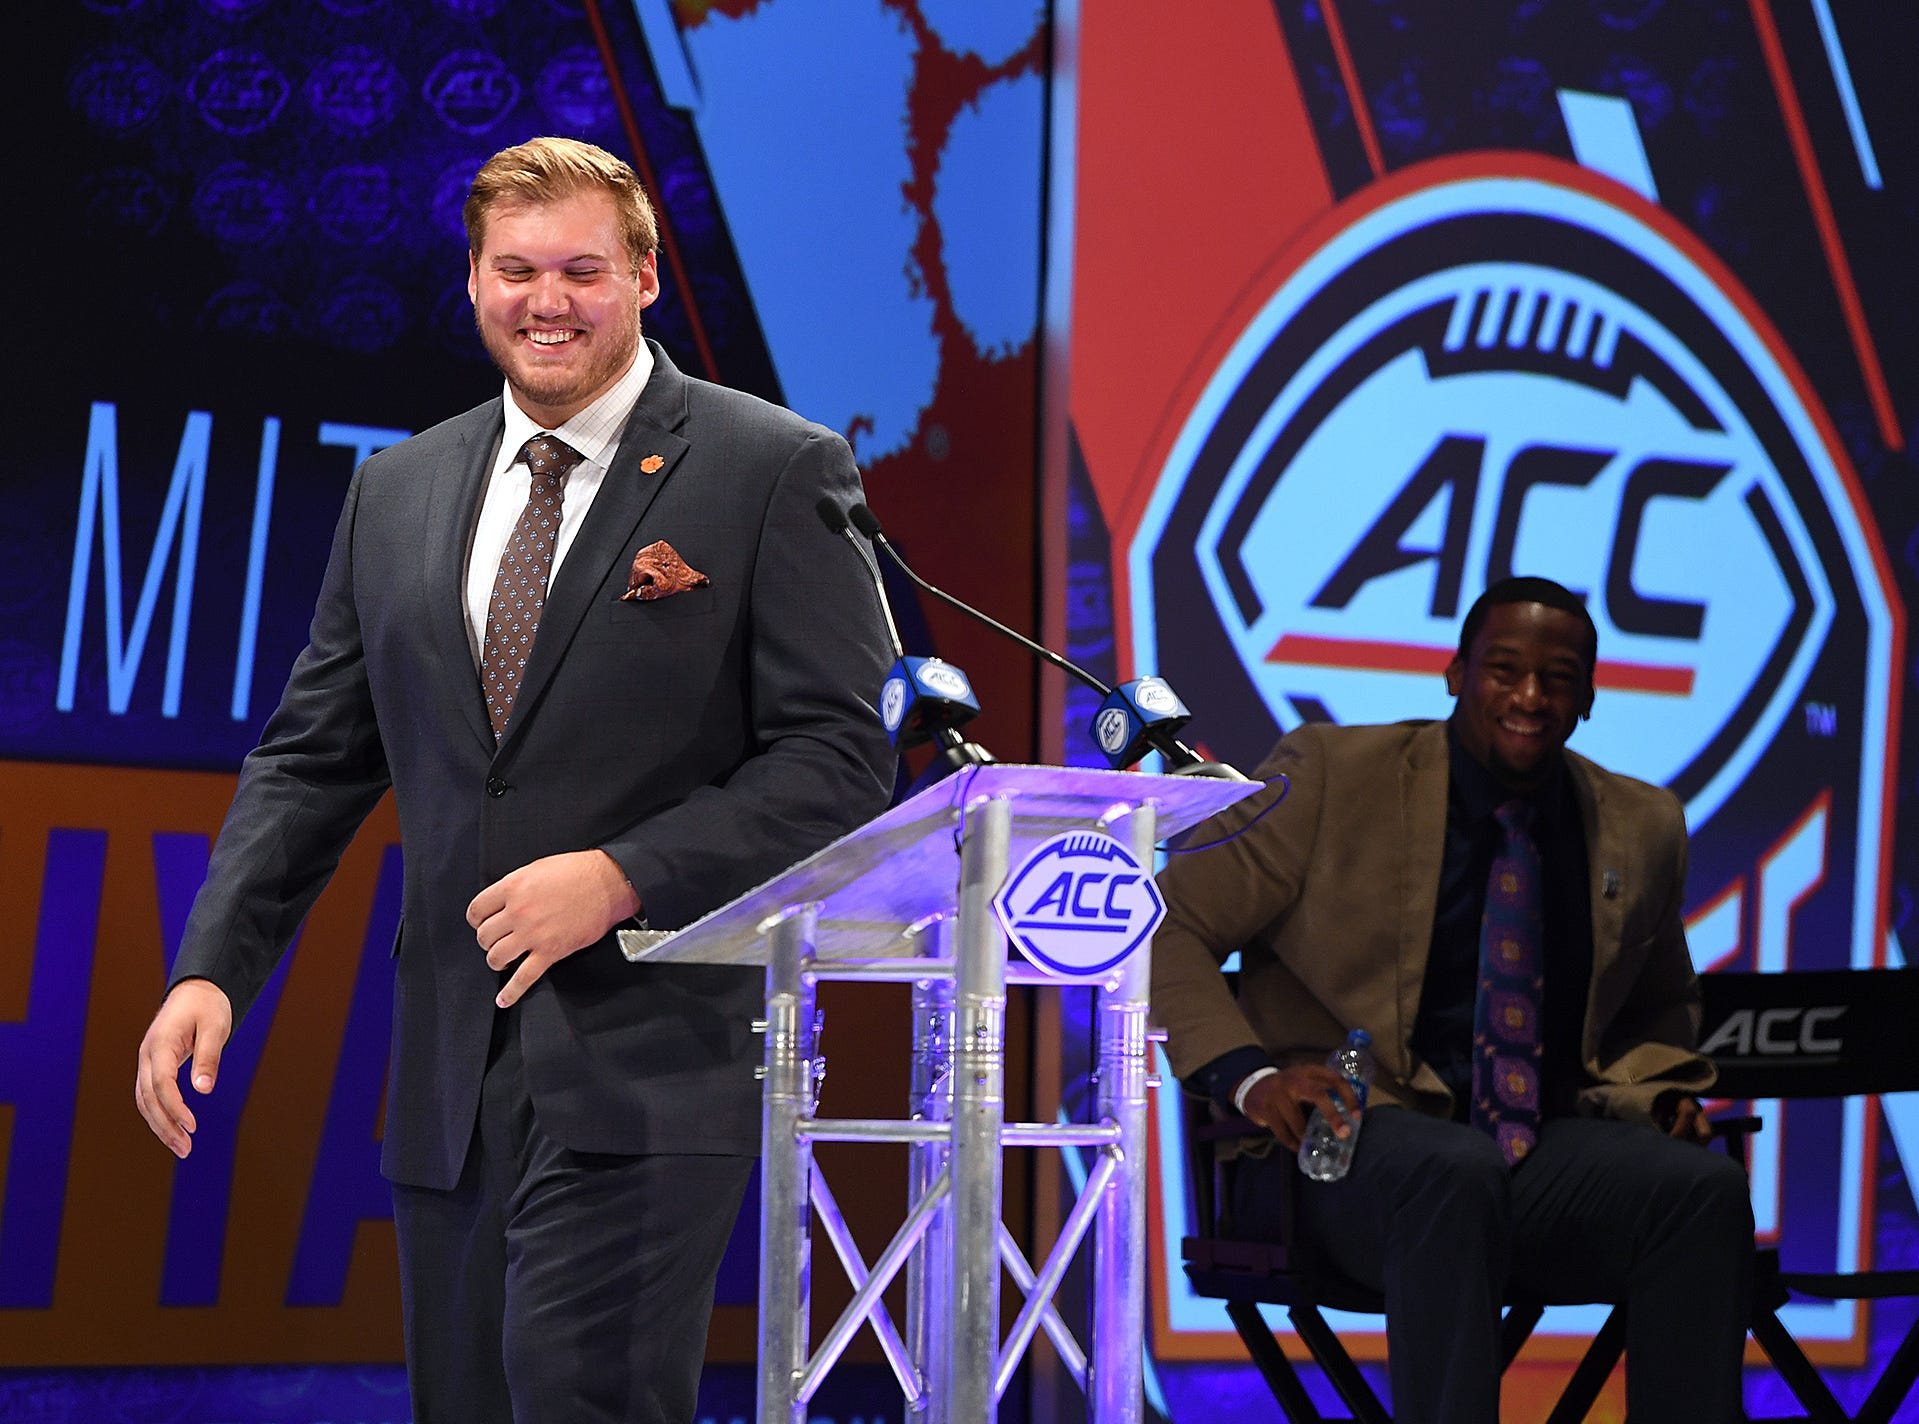 Clemson offensive lineman Mitch Hyatt  laughs as he walks to the podium at the ACC Football Kickoff in Charlotte, N.C., Thursday, July 19, 2018.